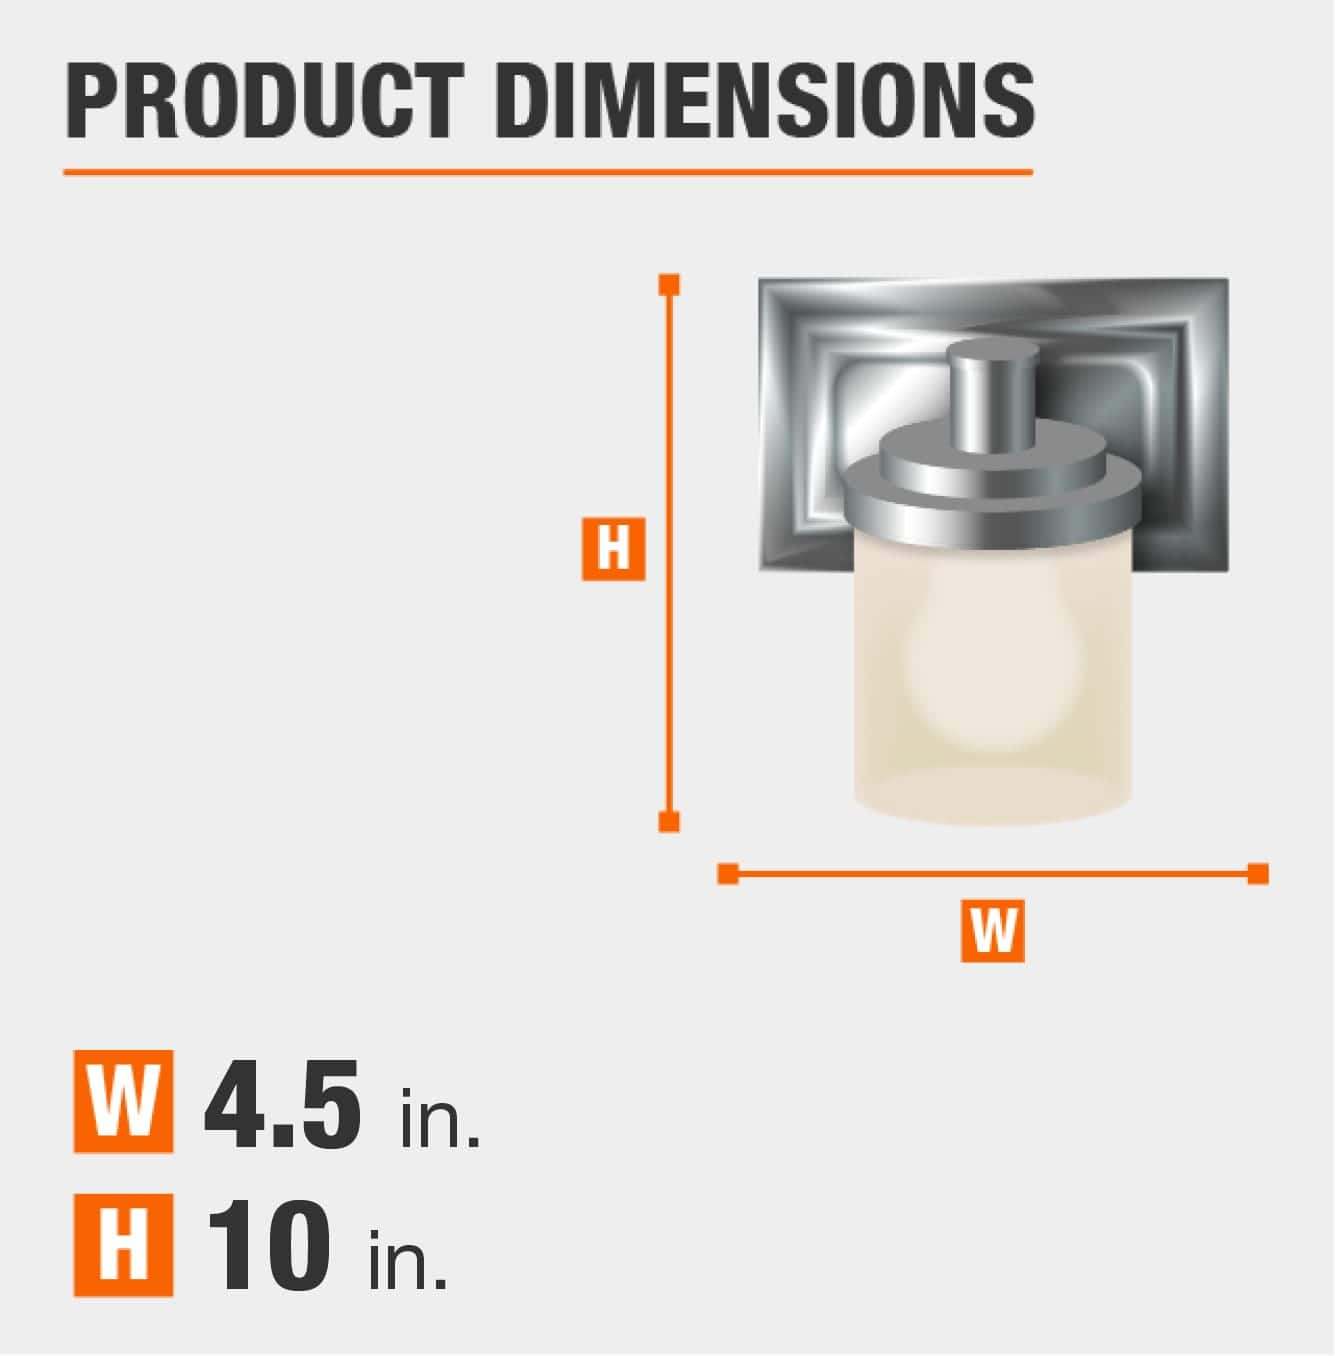 product dimensions are 10 inches by 4.5 inches